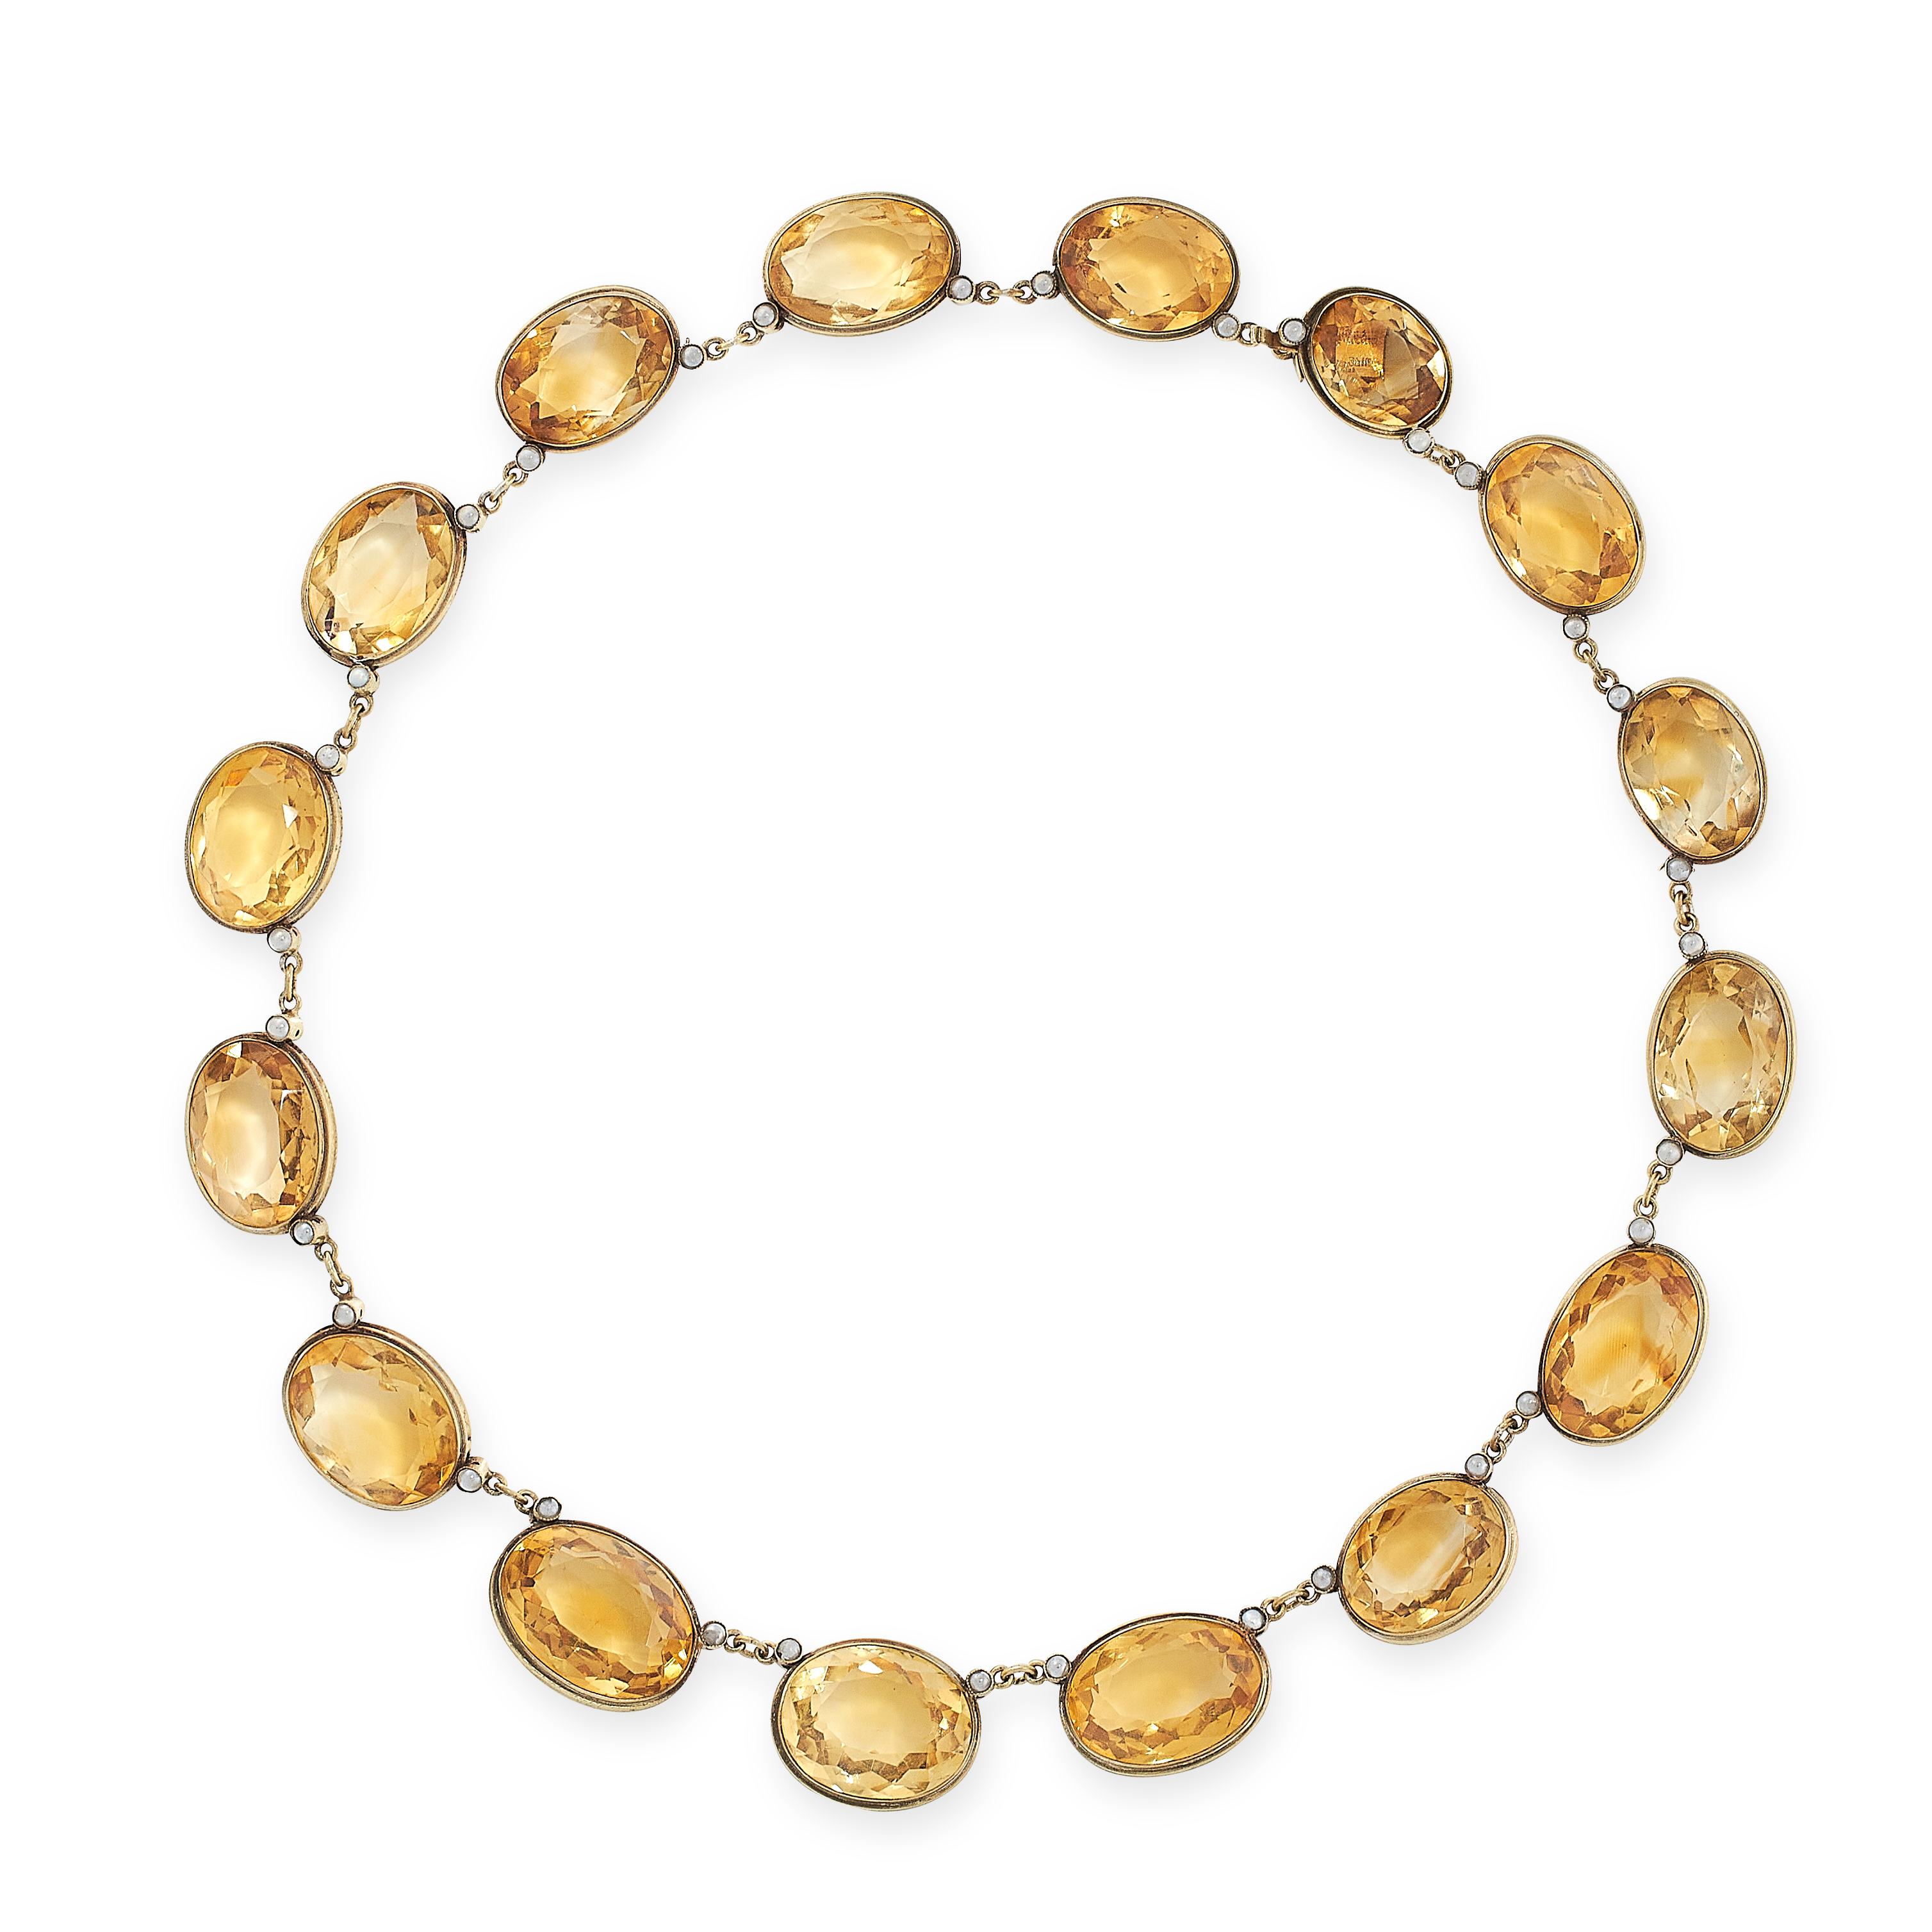 CITRINE RIVIERE NECKLACE comprising of a row of sixteen graduated oval cut citrines, 42.0cm, 55.8g.